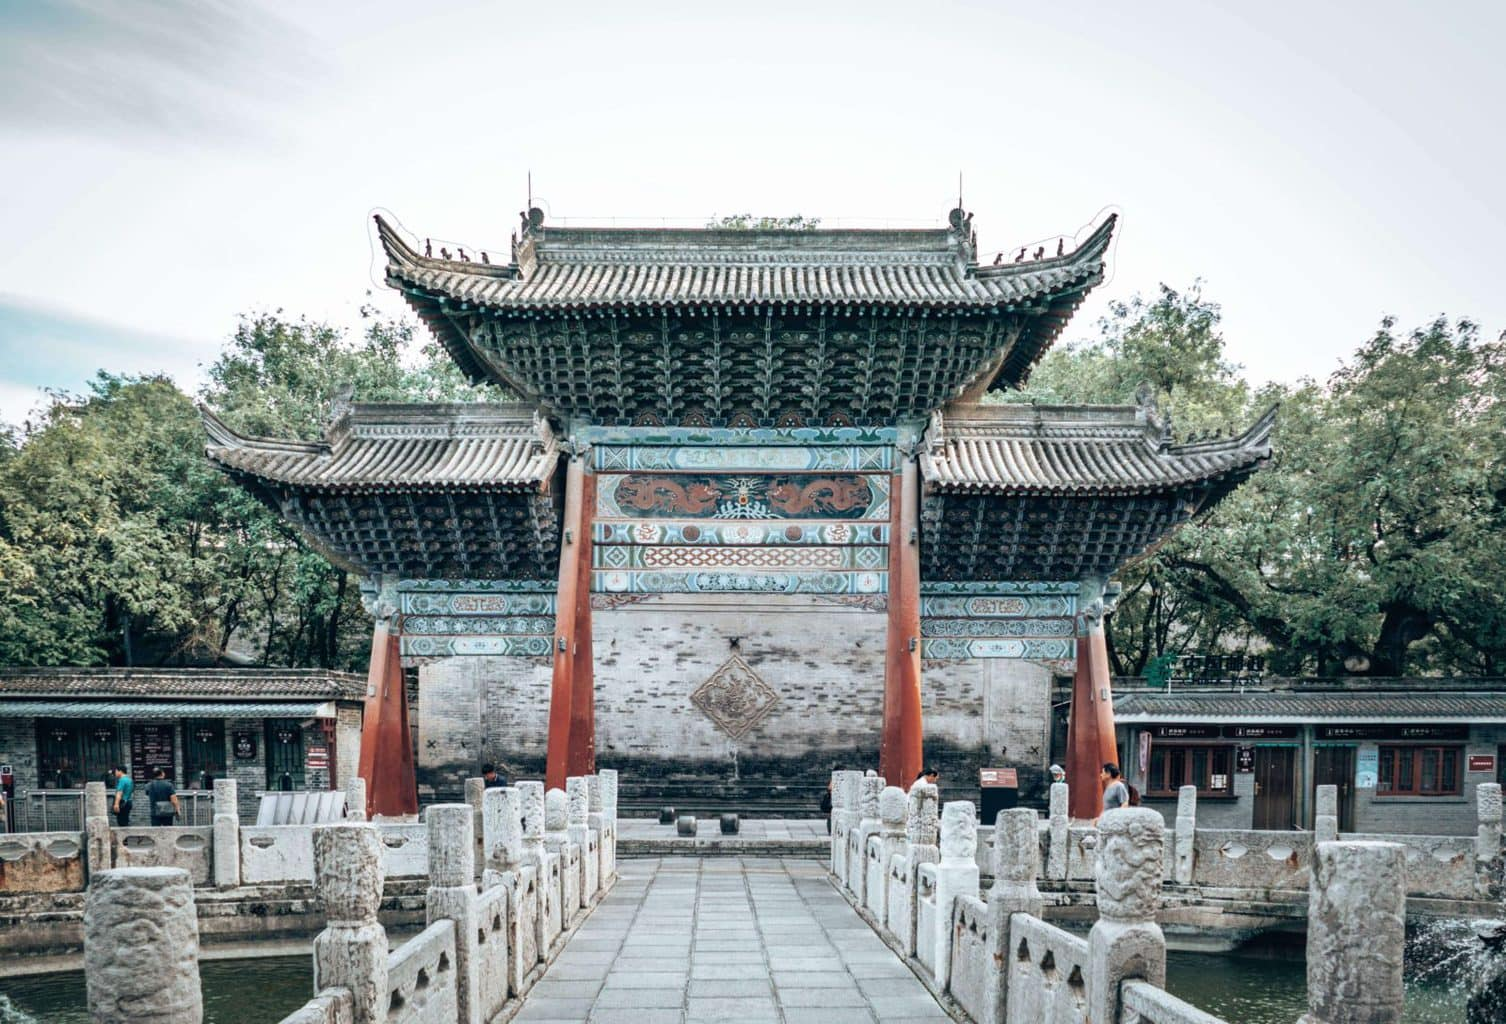 Image from the grounds of the Beilin Museum in Xian China